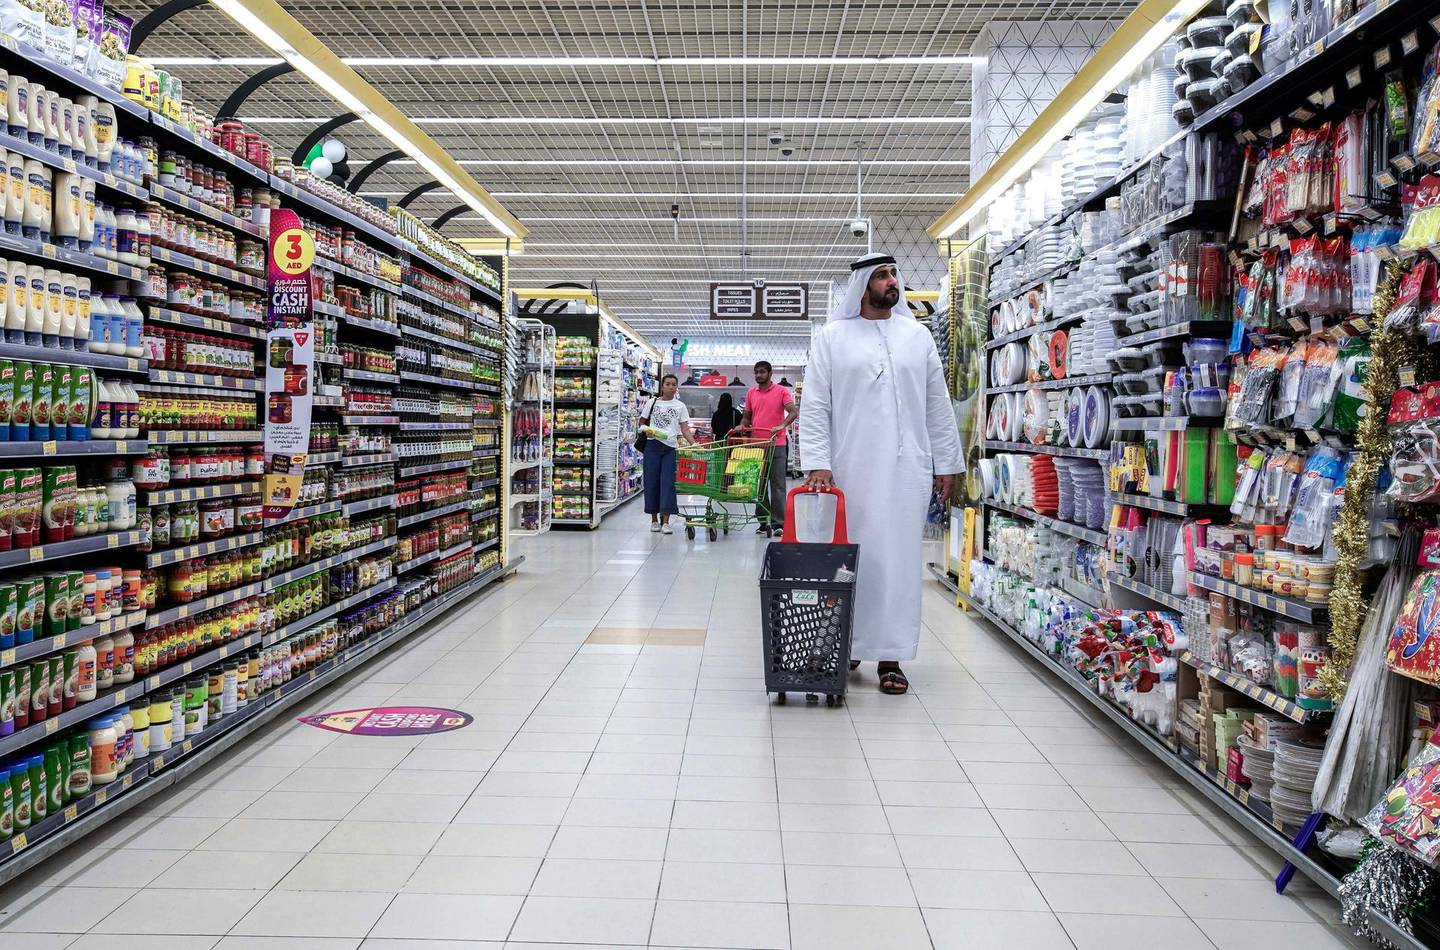 Abu Dhabi, United Arab Emirates, March 19, 2020.  Shoppers doing their groceries at the Lulu Hypermarket at Mushriff Mall during the Covid-19 pandemic.Victor Besa / The NationalReporter:   Dasn SandersonSection:  NA